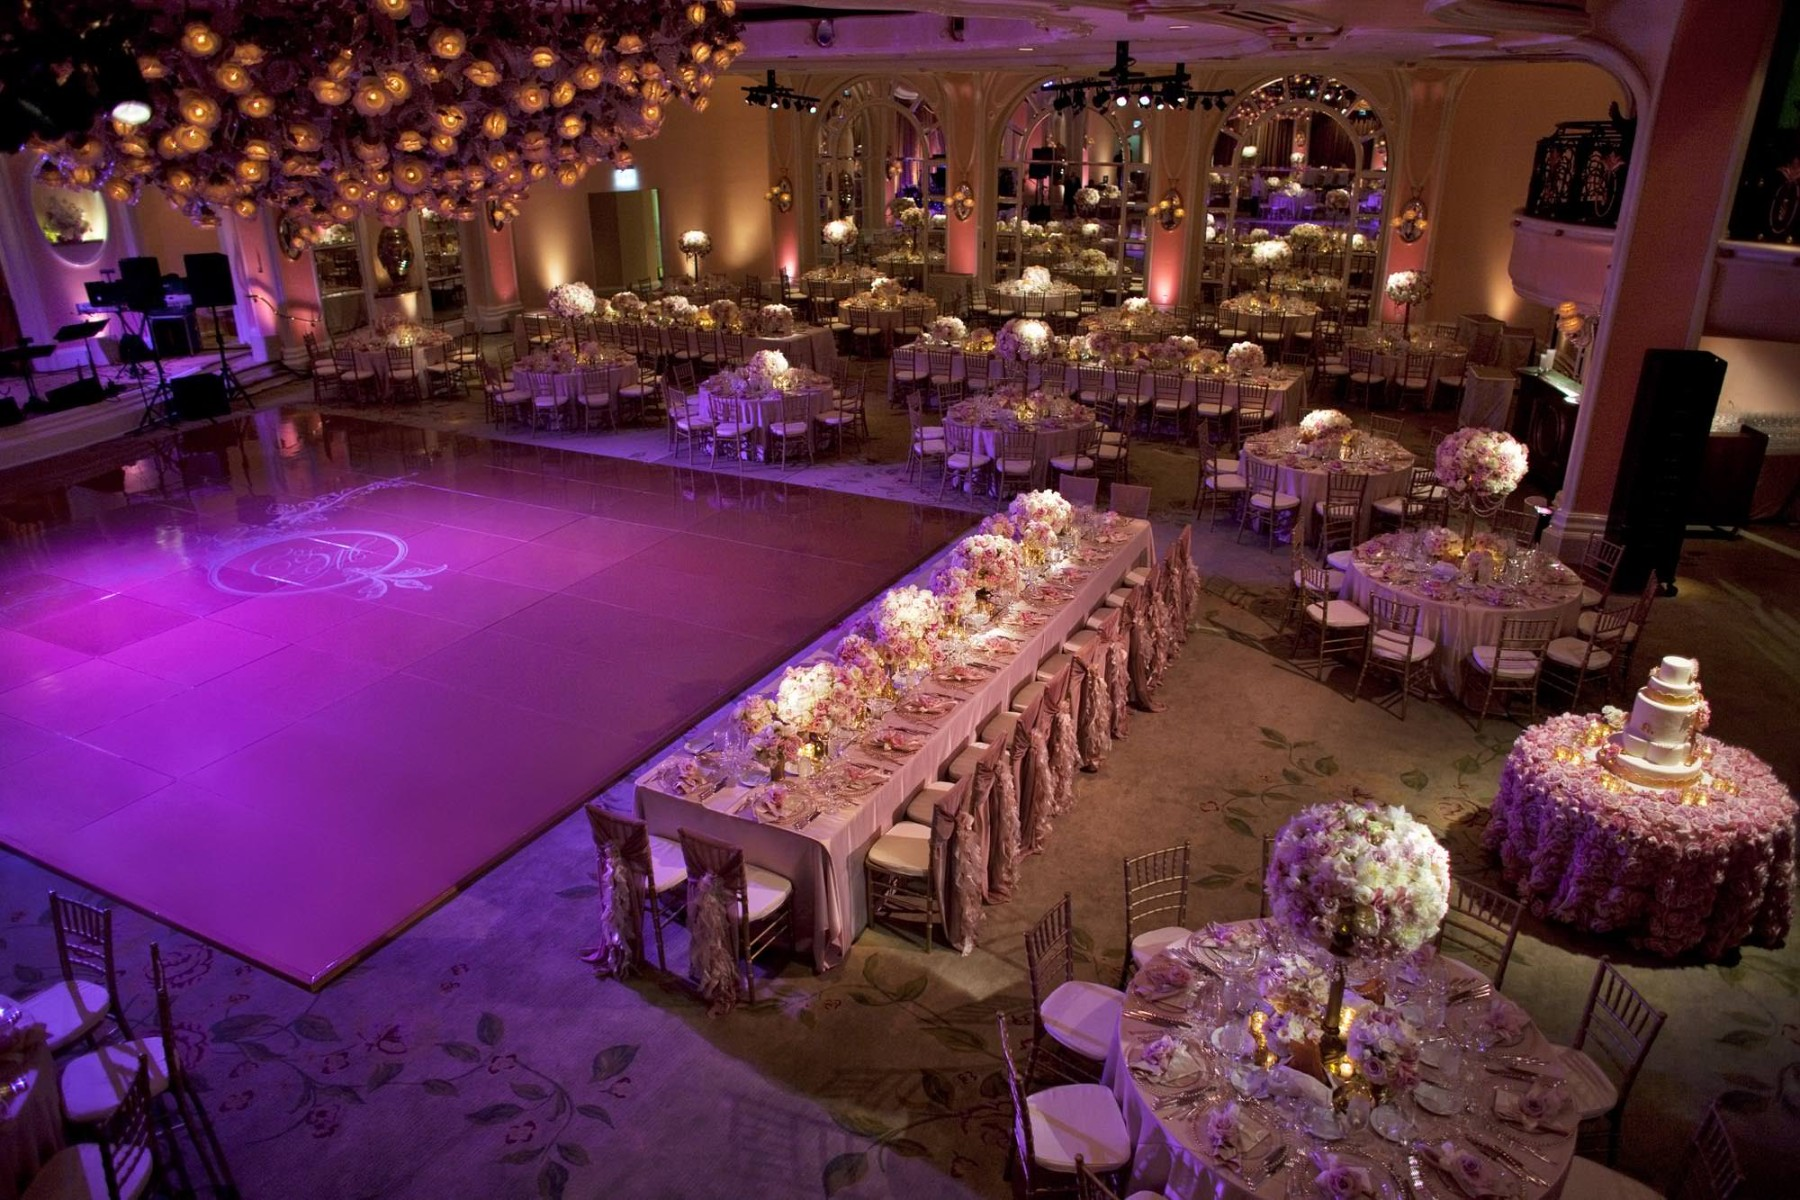 Wedding Beverly Hills Hotel View Full Size Image 1800 1200